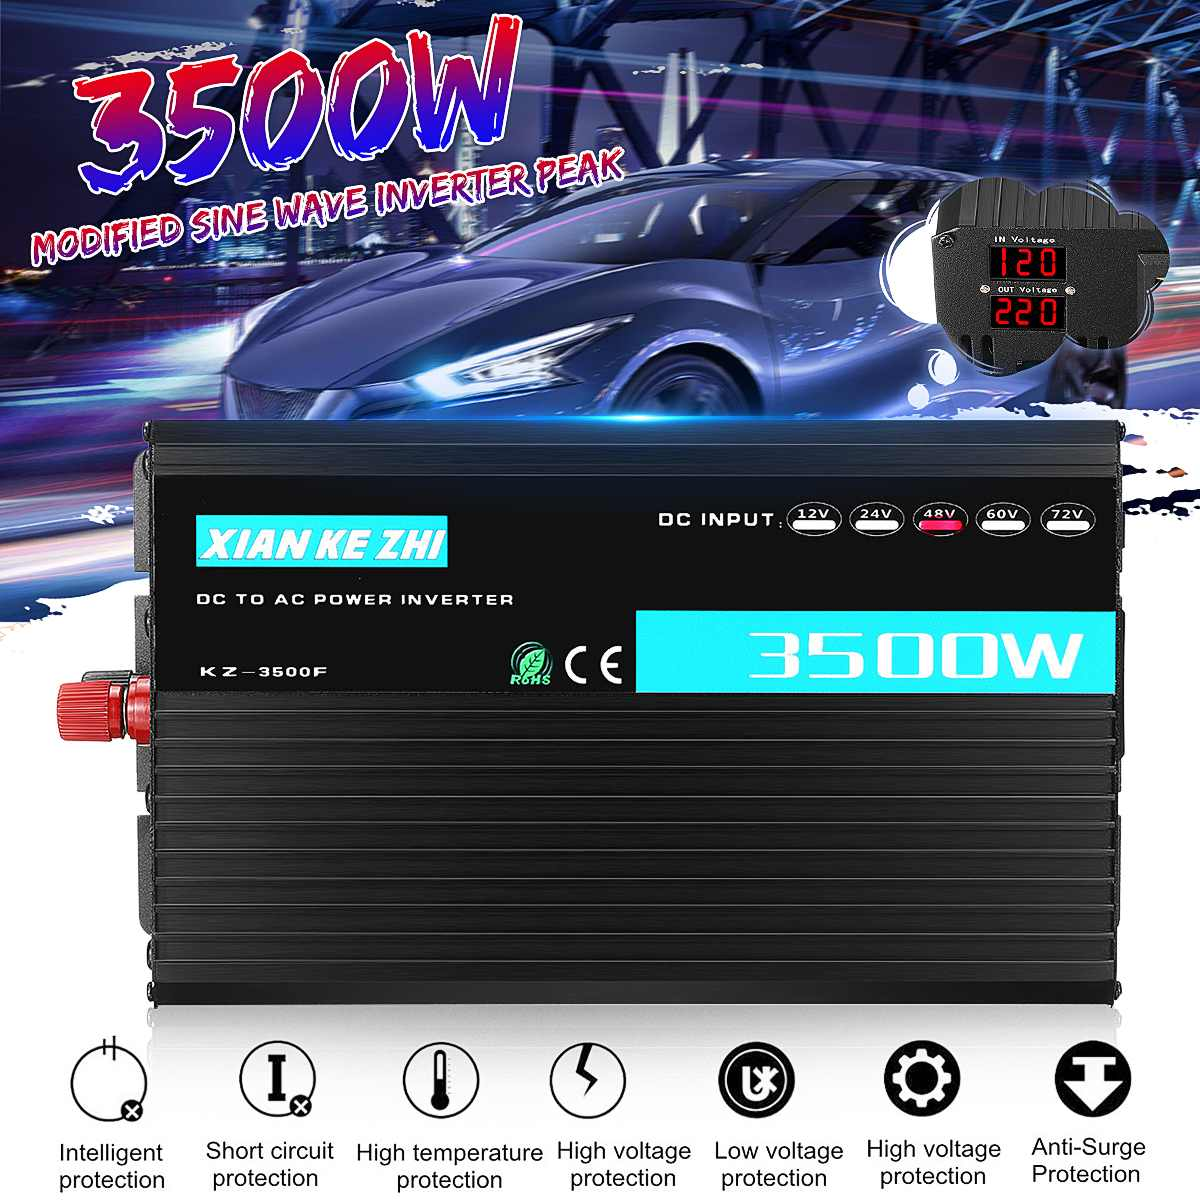 Dual Display Intelligent 3500W Modified Power Inverter 12/24/48/60/72V TO 220V LED Display Power Converter Multi ProtactionDual Display Intelligent 3500W Modified Power Inverter 12/24/48/60/72V TO 220V LED Display Power Converter Multi Protaction